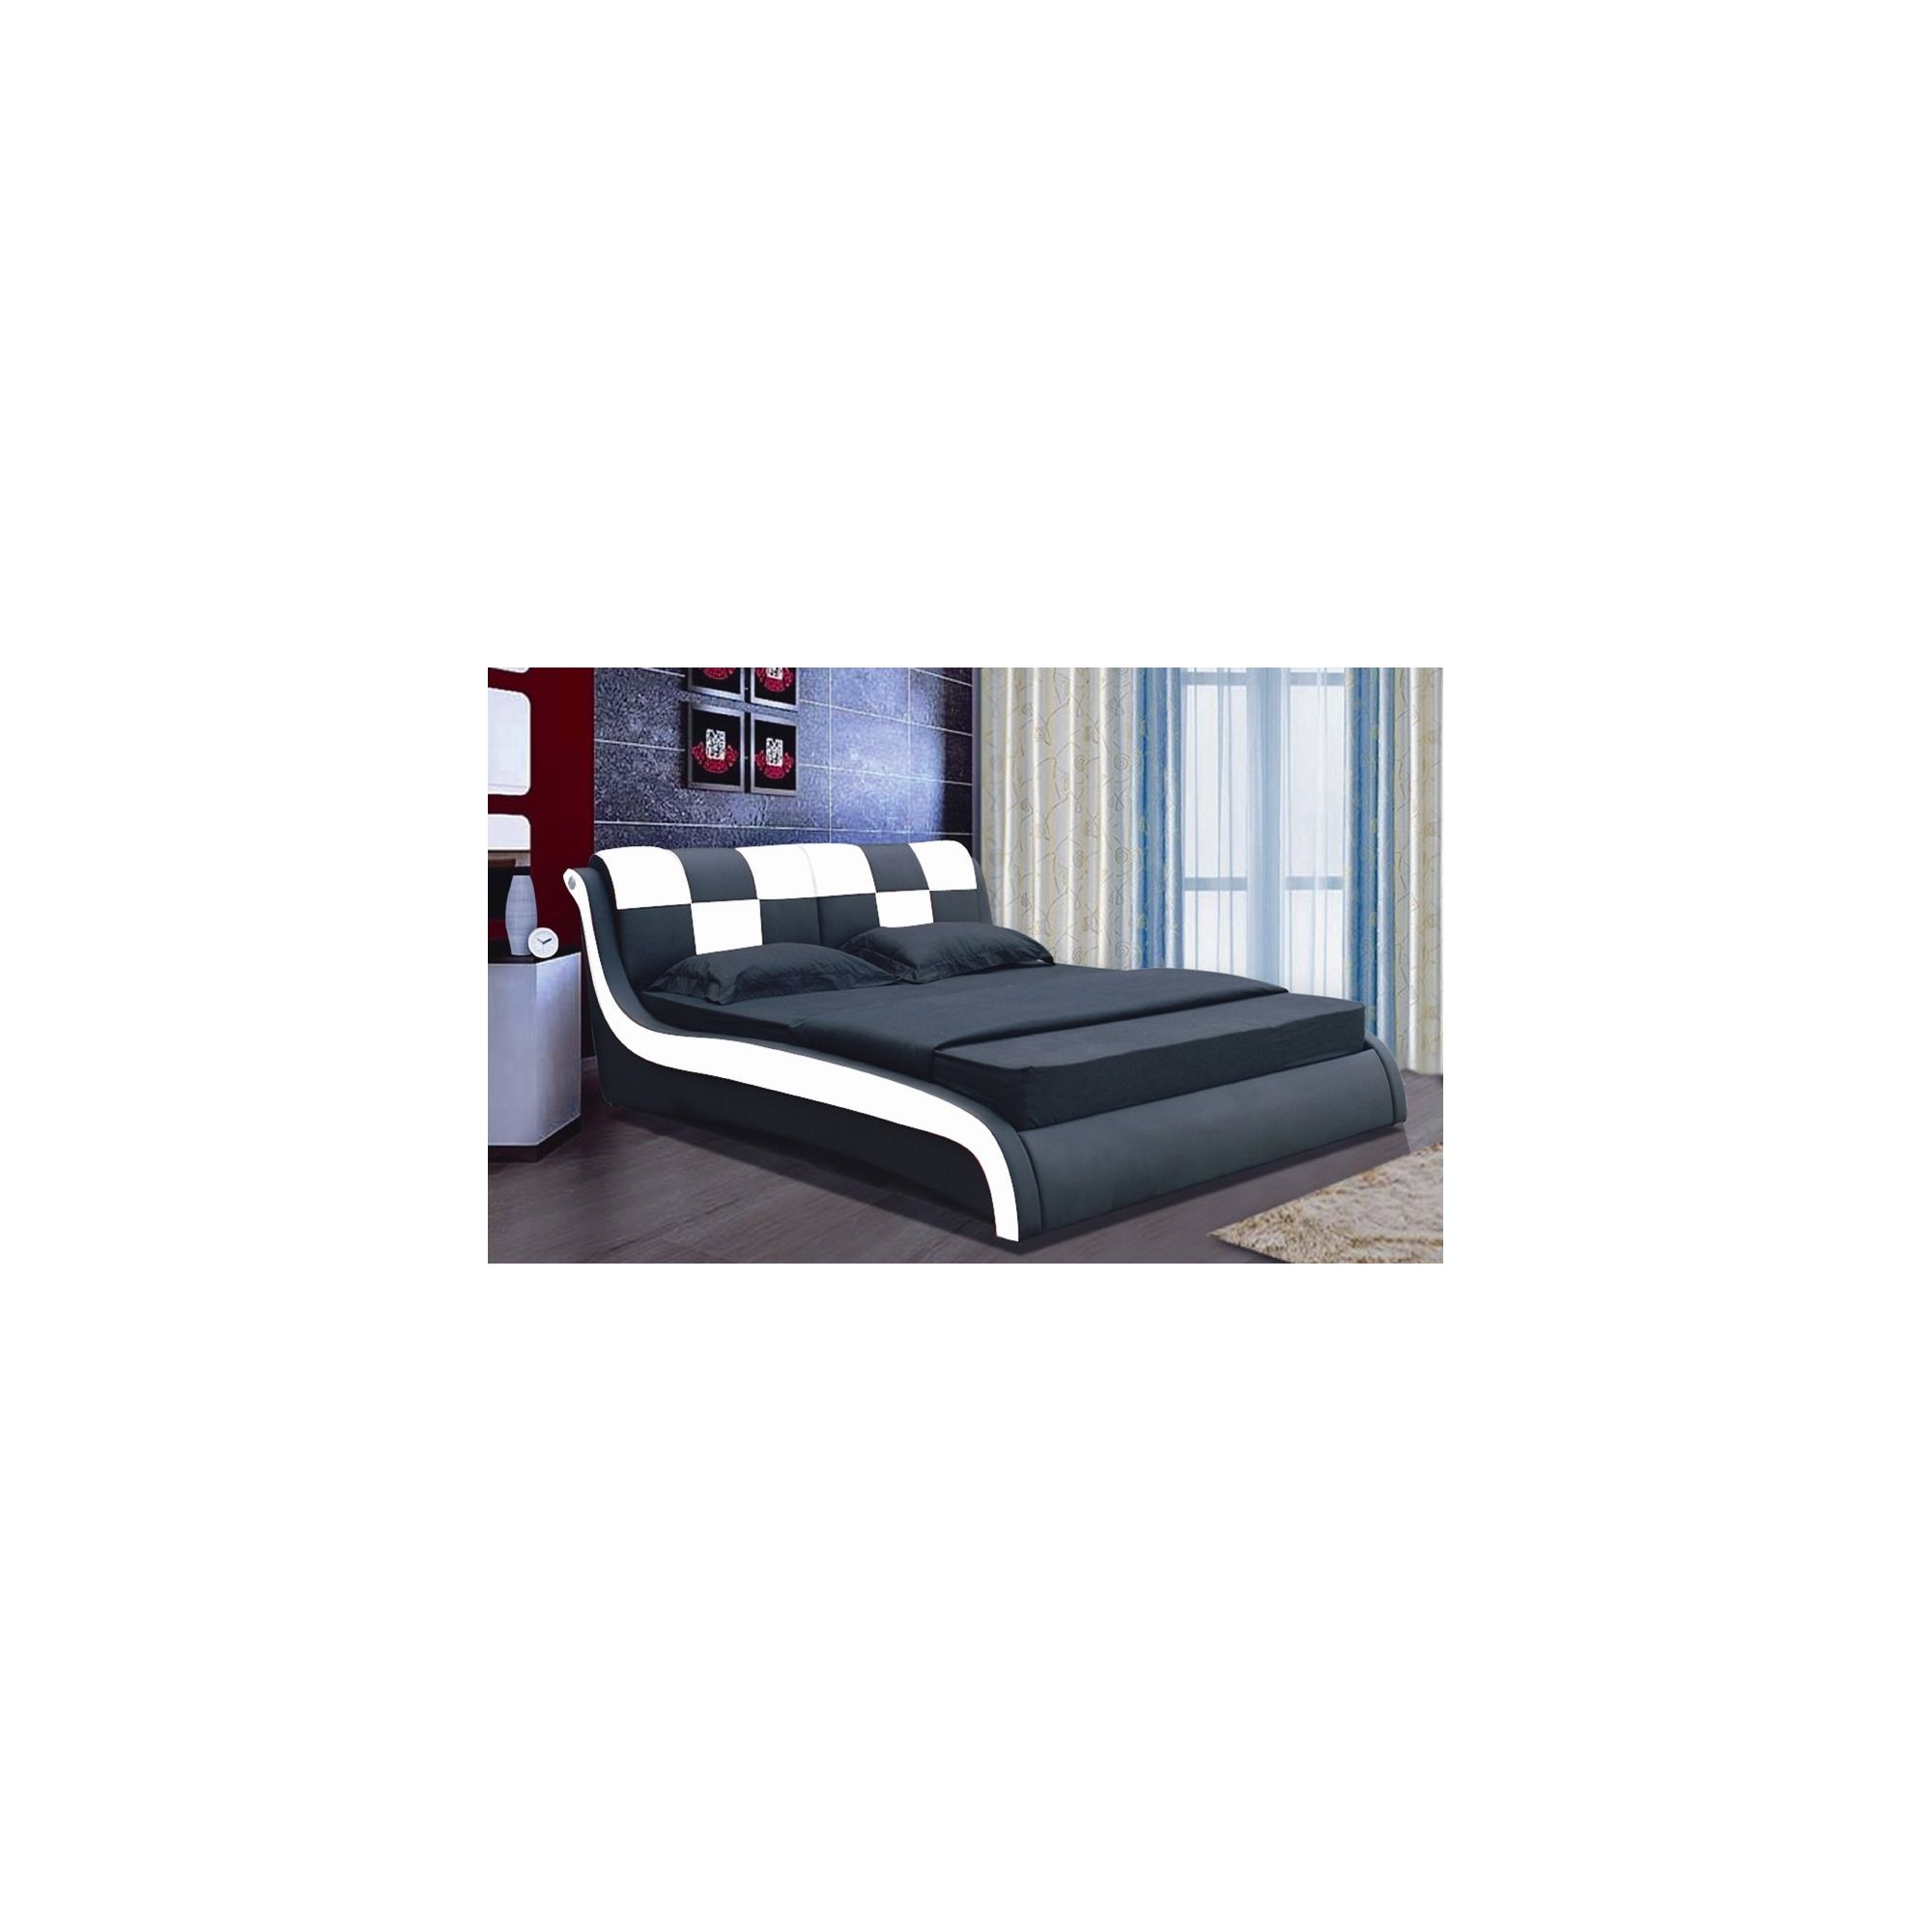 Giomani Designs Designer Check Bed - White / Black - Double at Tesco Direct